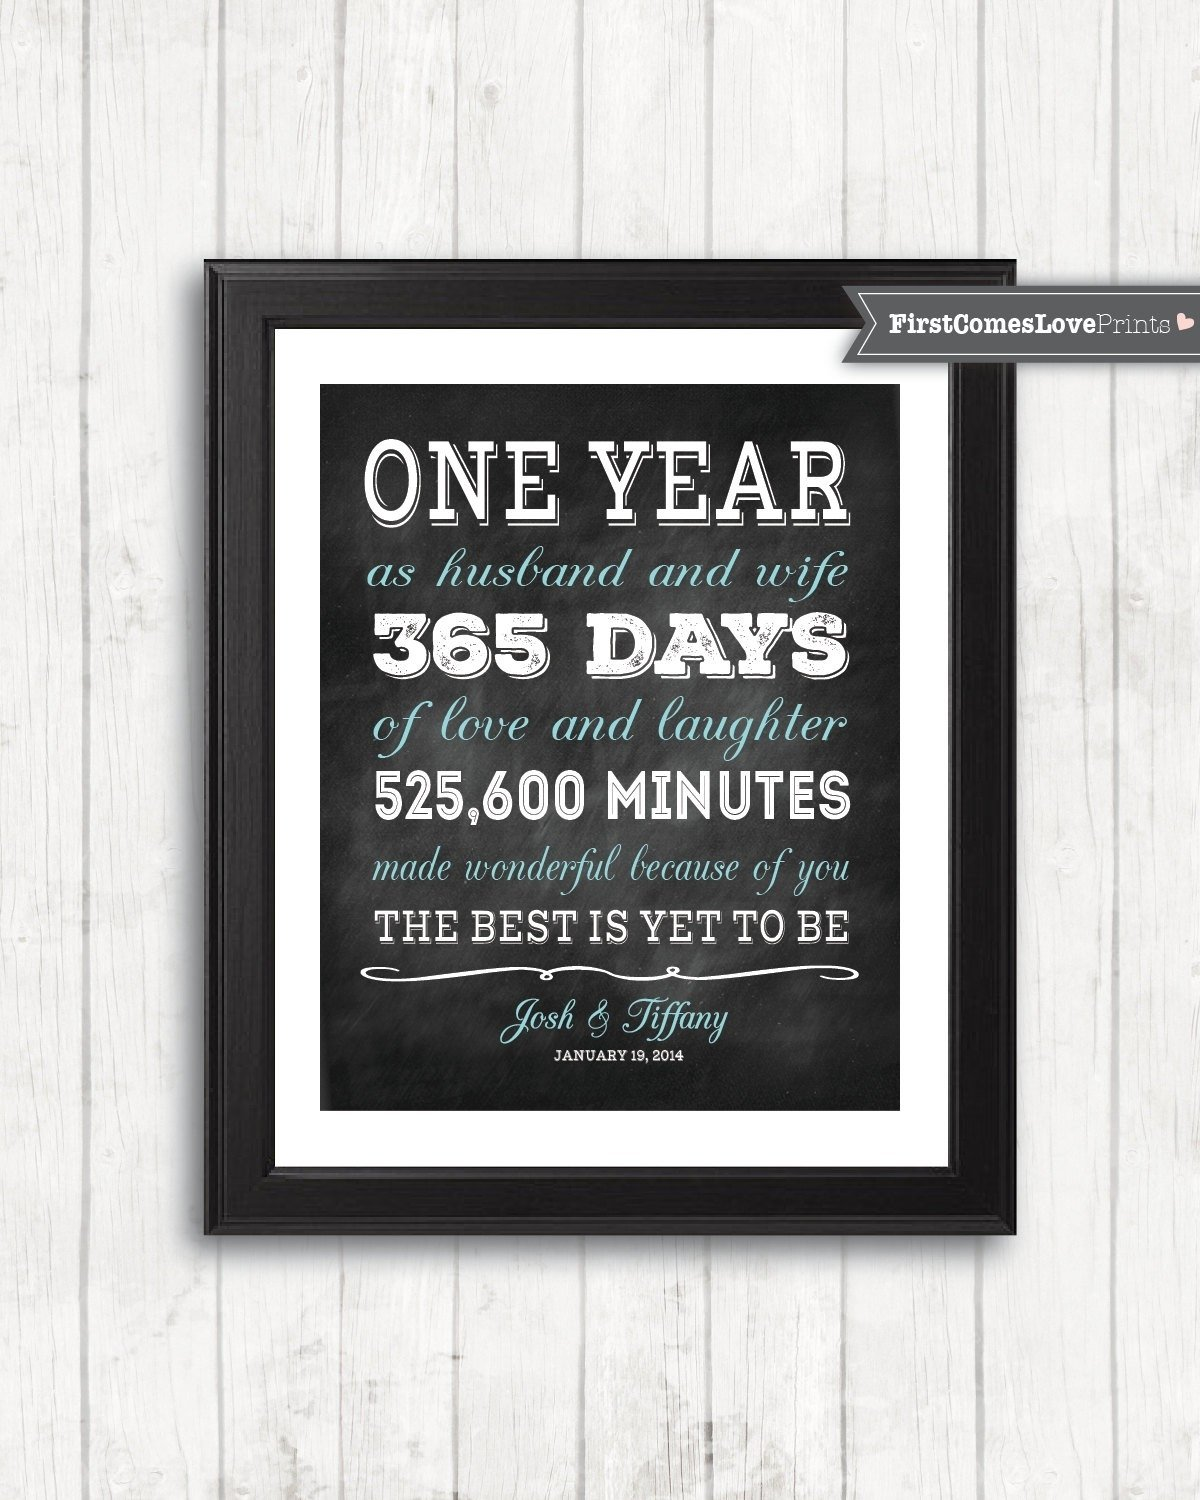 10 Gorgeous 1St Year Anniversary Gift Ideas For Him st wed design inspiration 1st wedding anniversary gift ideas him 2 2020